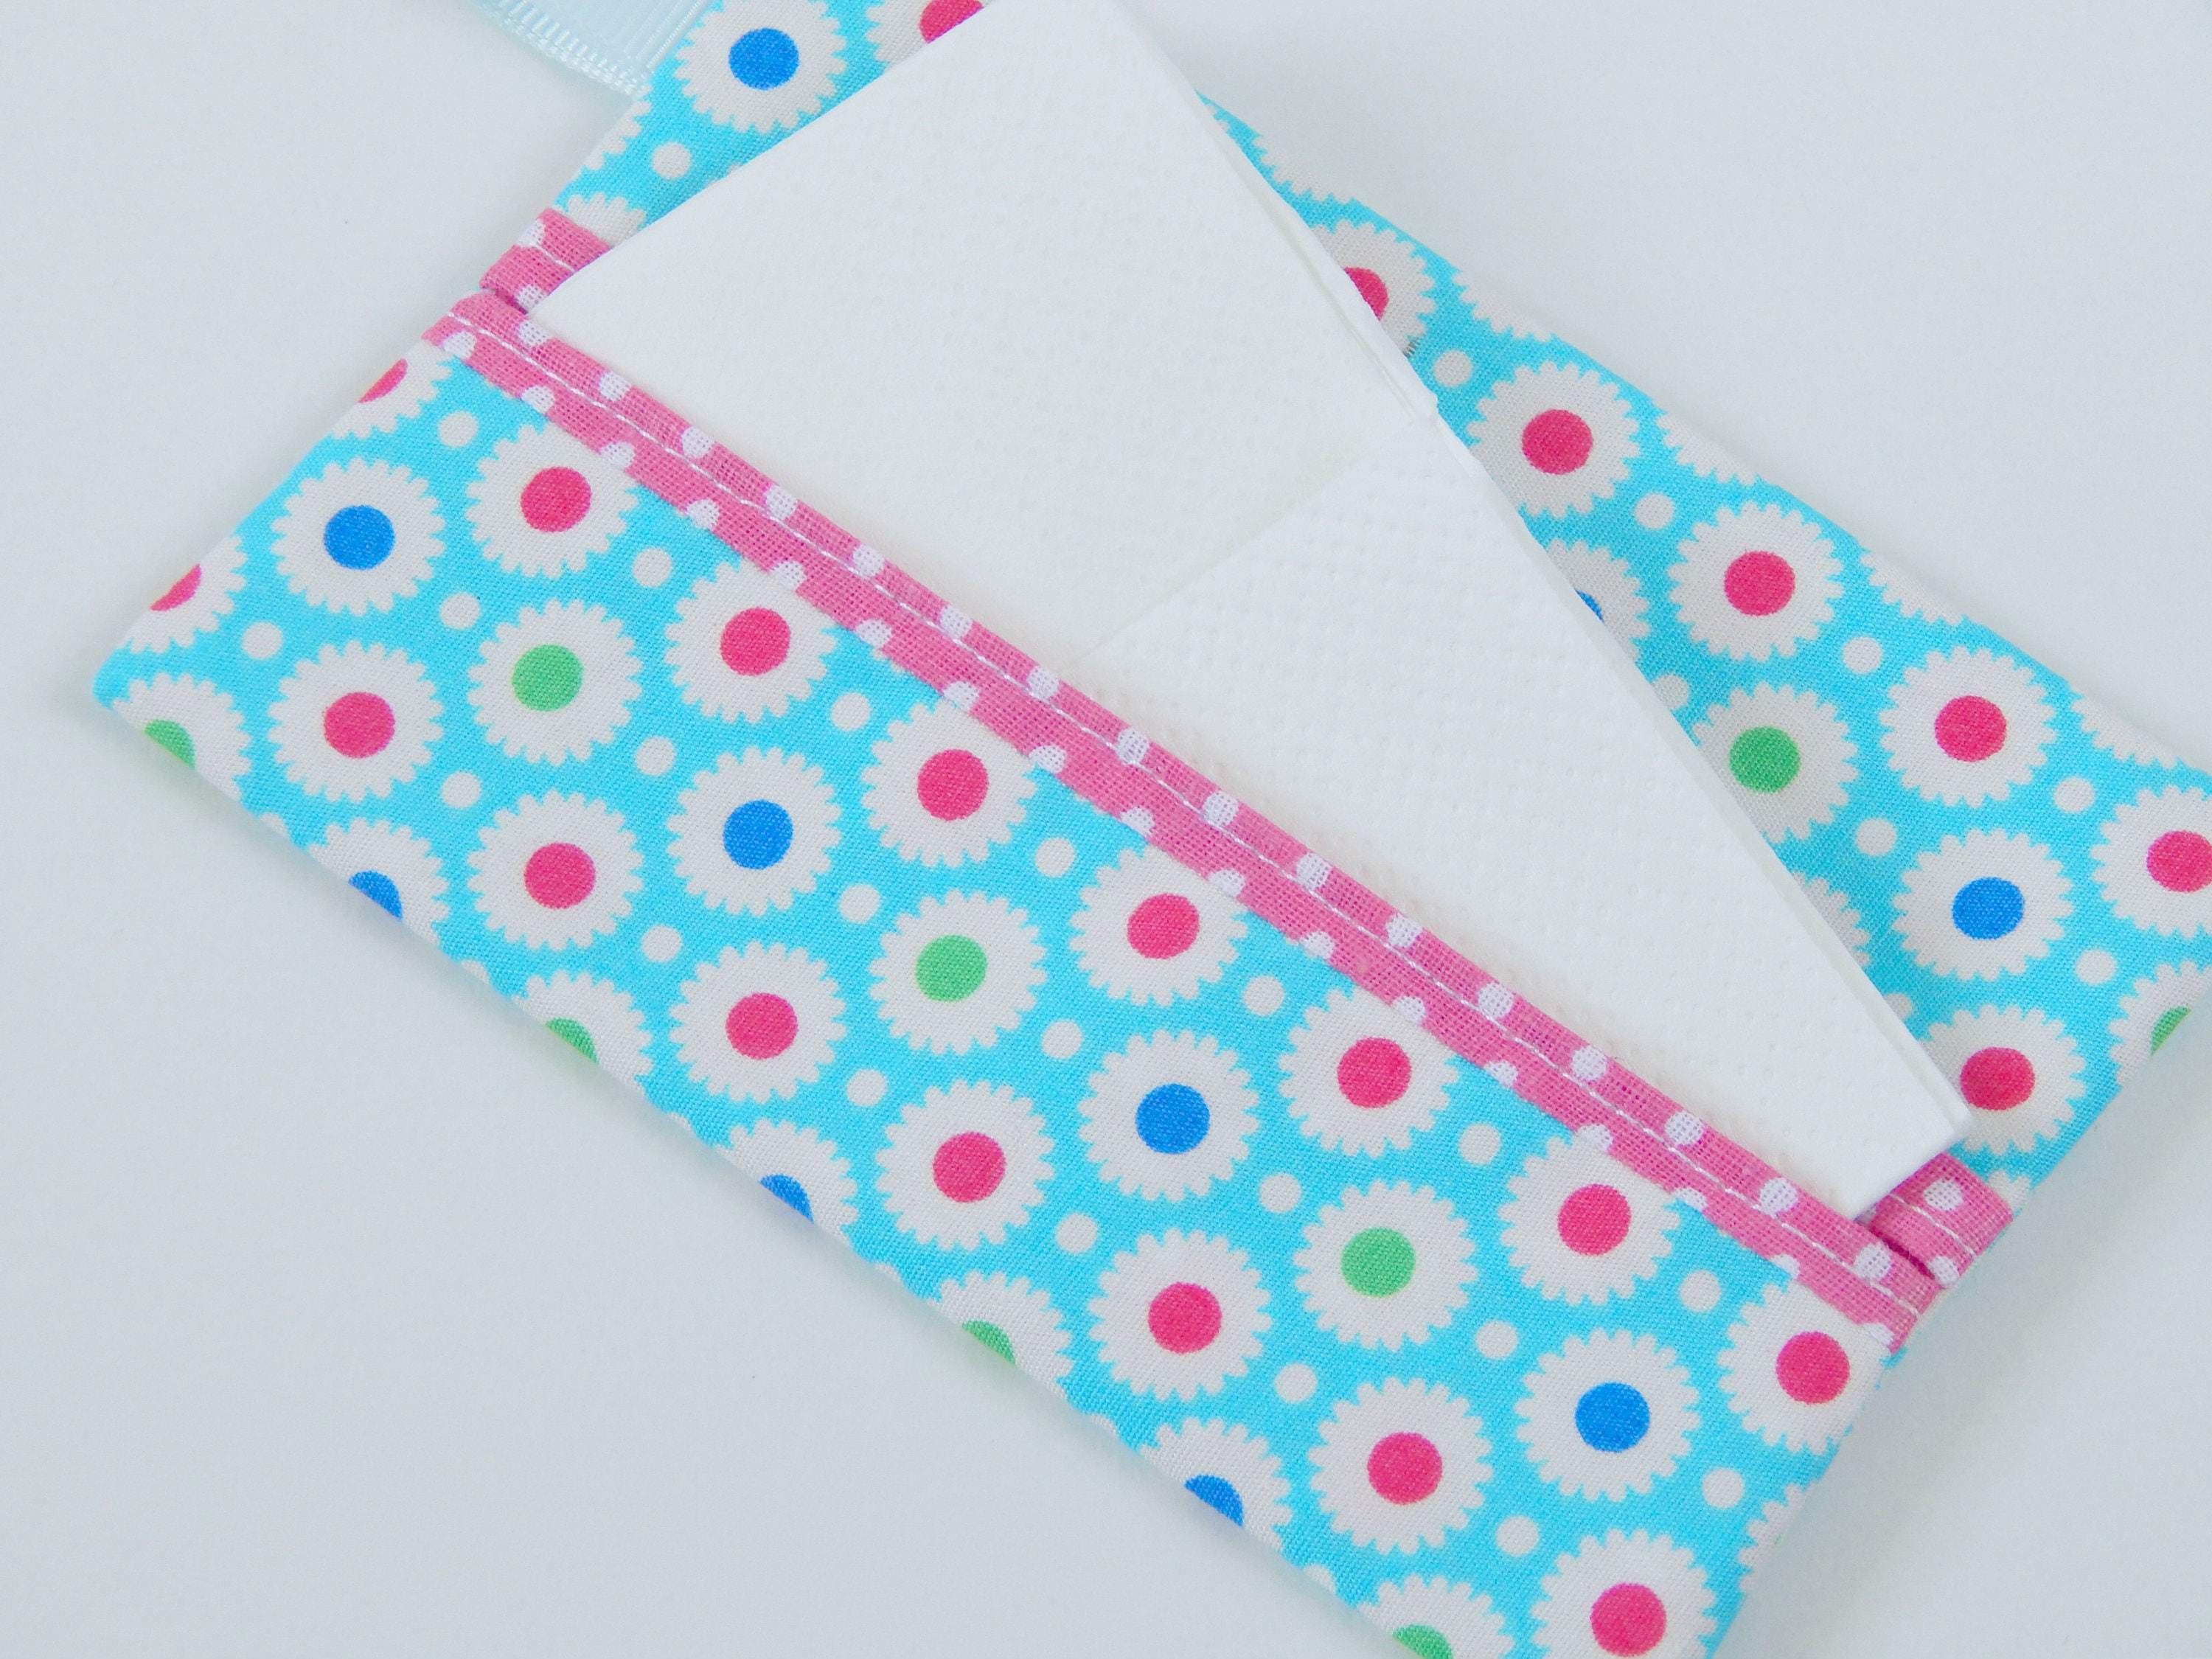 Tissue cover handmade pocket tissue cover floral tissue cover a perfect handbag accessory for Summer or a lovely gift.